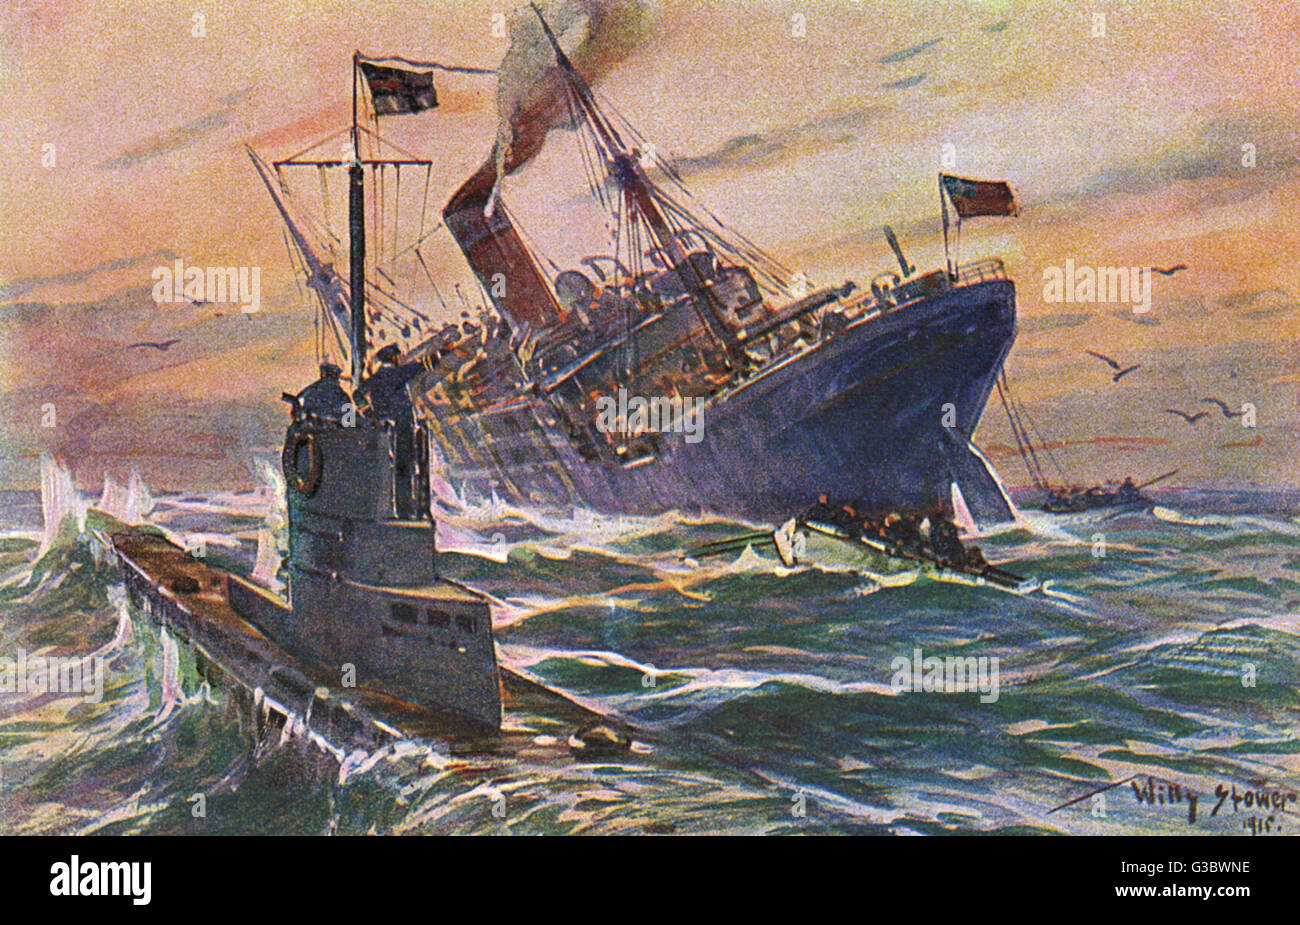 hight resolution of wwi german u boat attack on an english commercial freighter date 1915